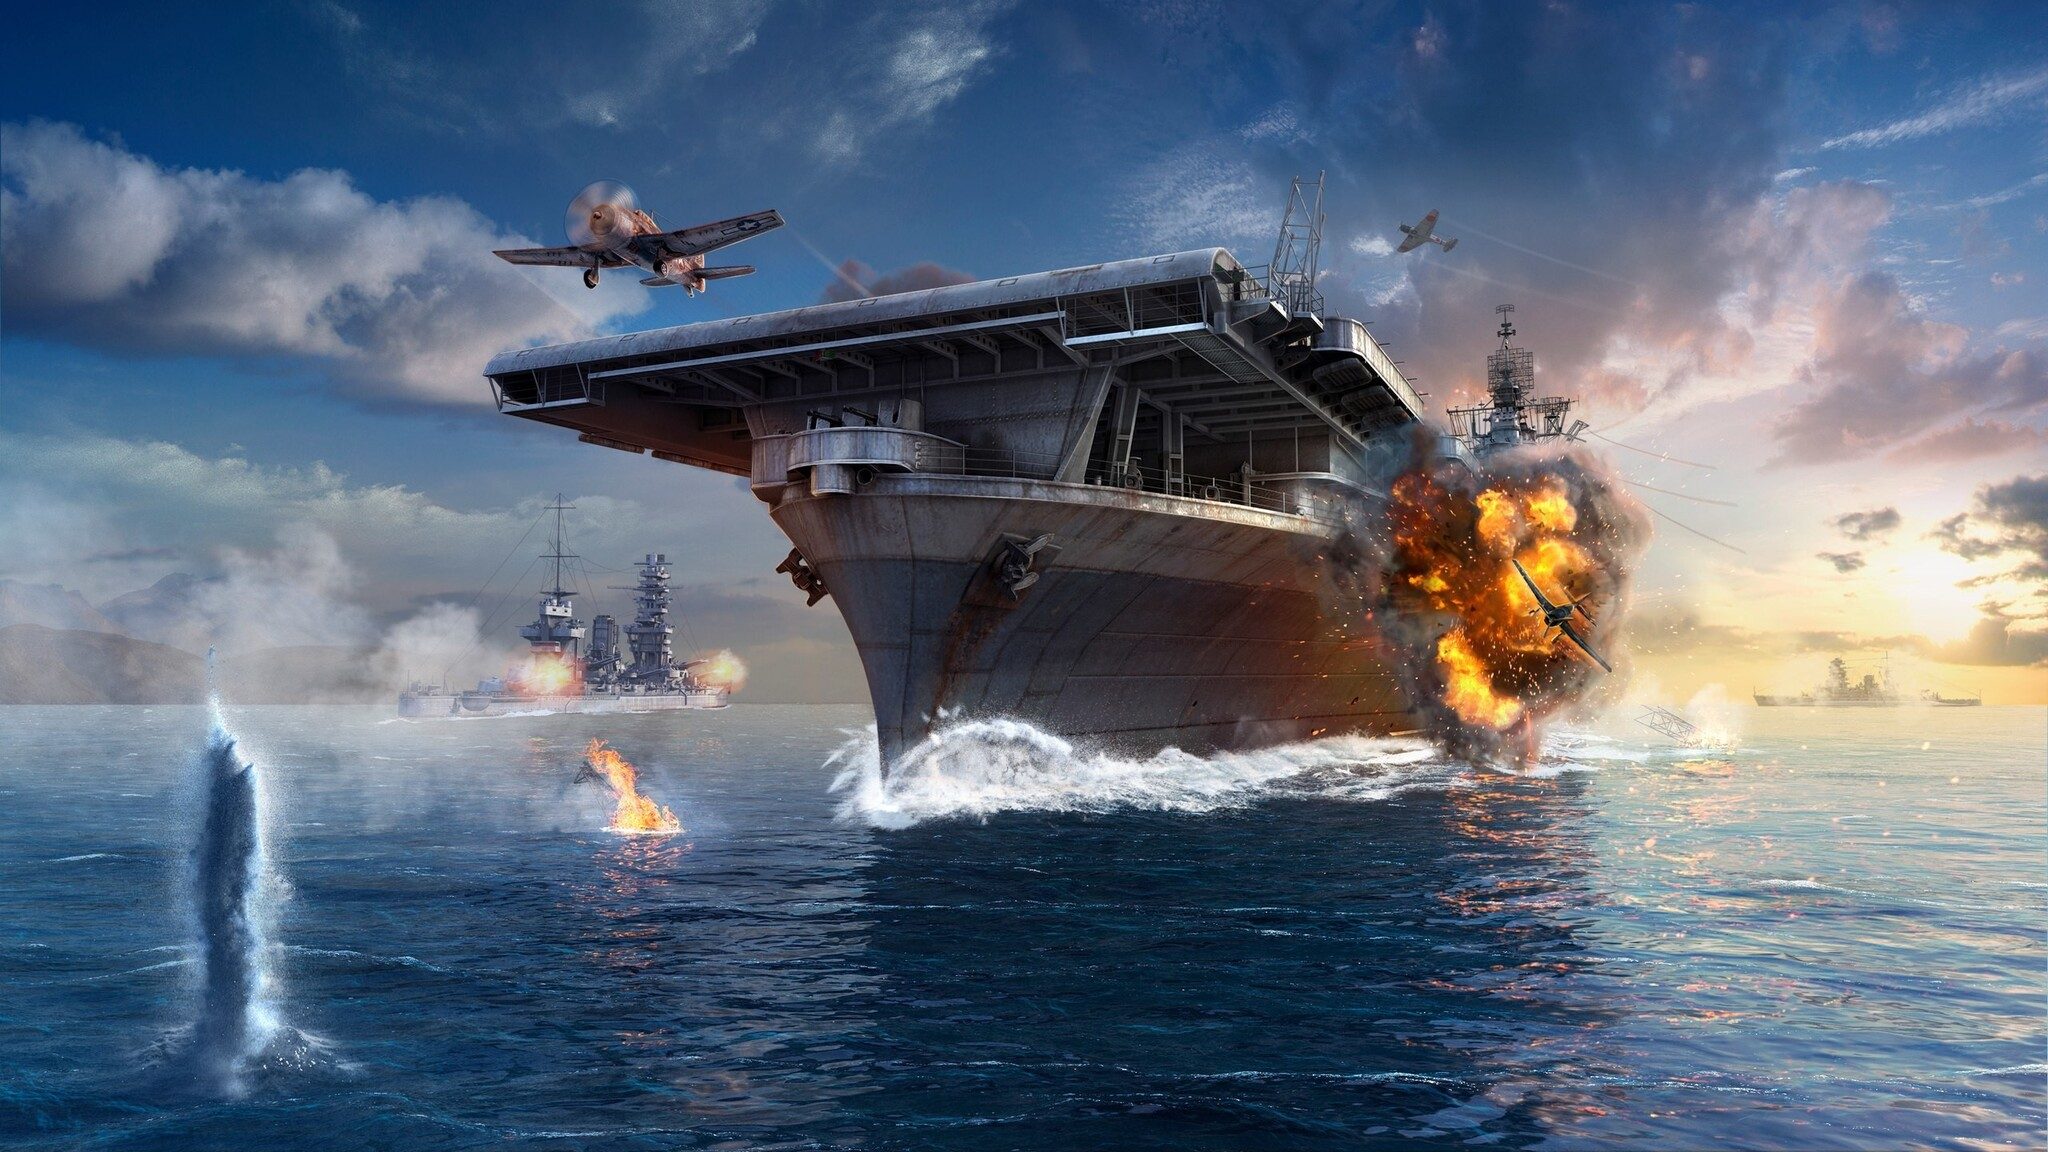 2048x1152 World Of Warships 2 2048x1152 Resolution HD 4k Wallpapers, Images, Backgrounds, Photos ...